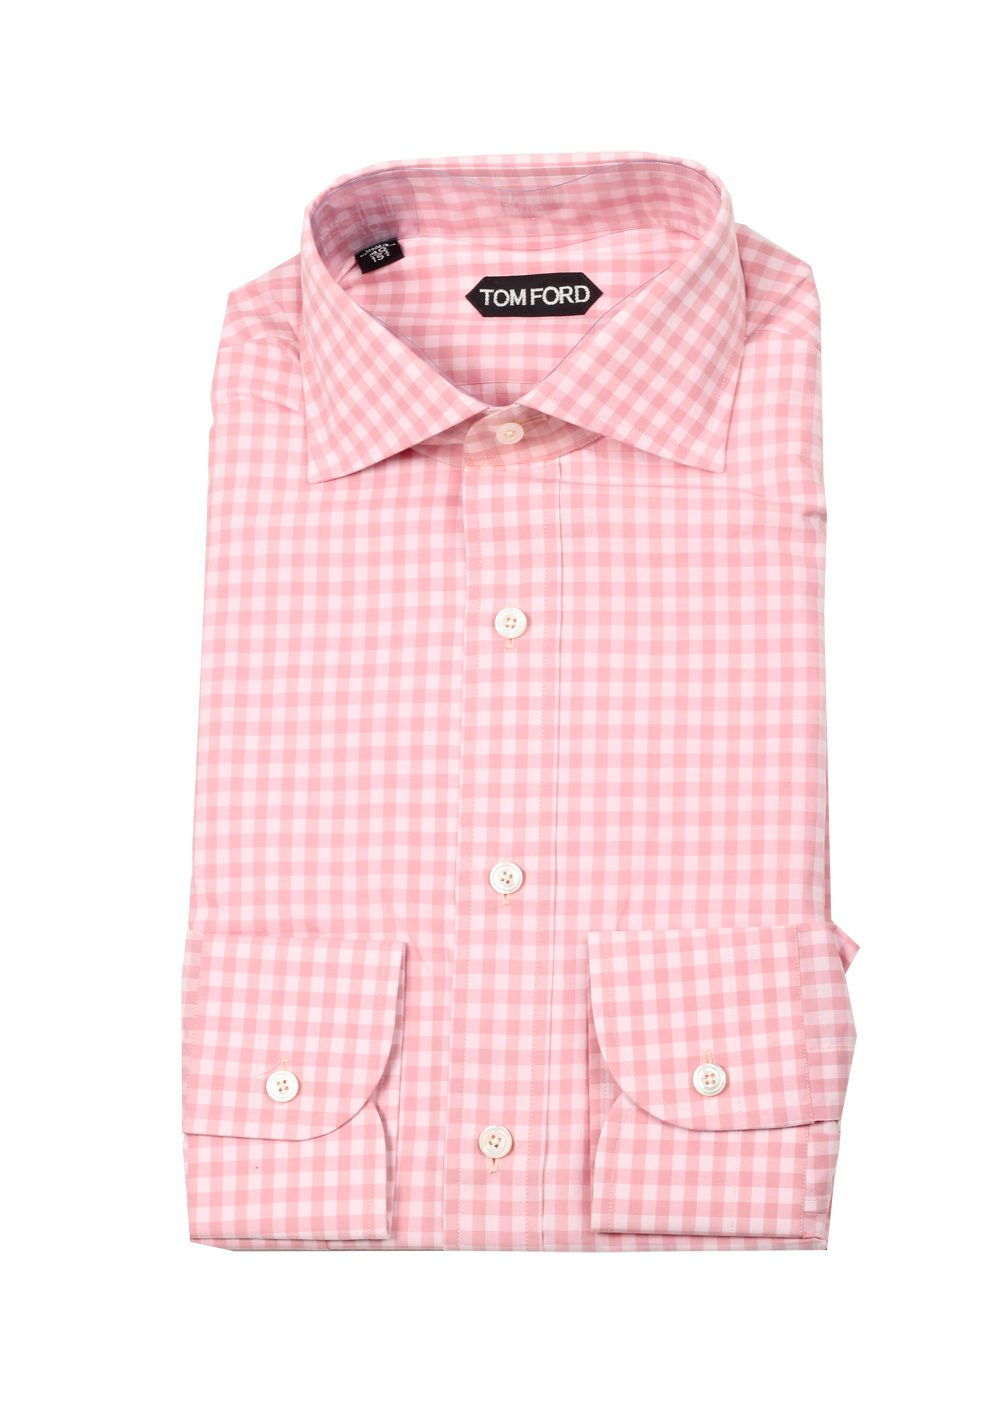 TOM FORD Checked White Pink Dress Shirt Size 40 / 15,75 U.S. | Costume Limité